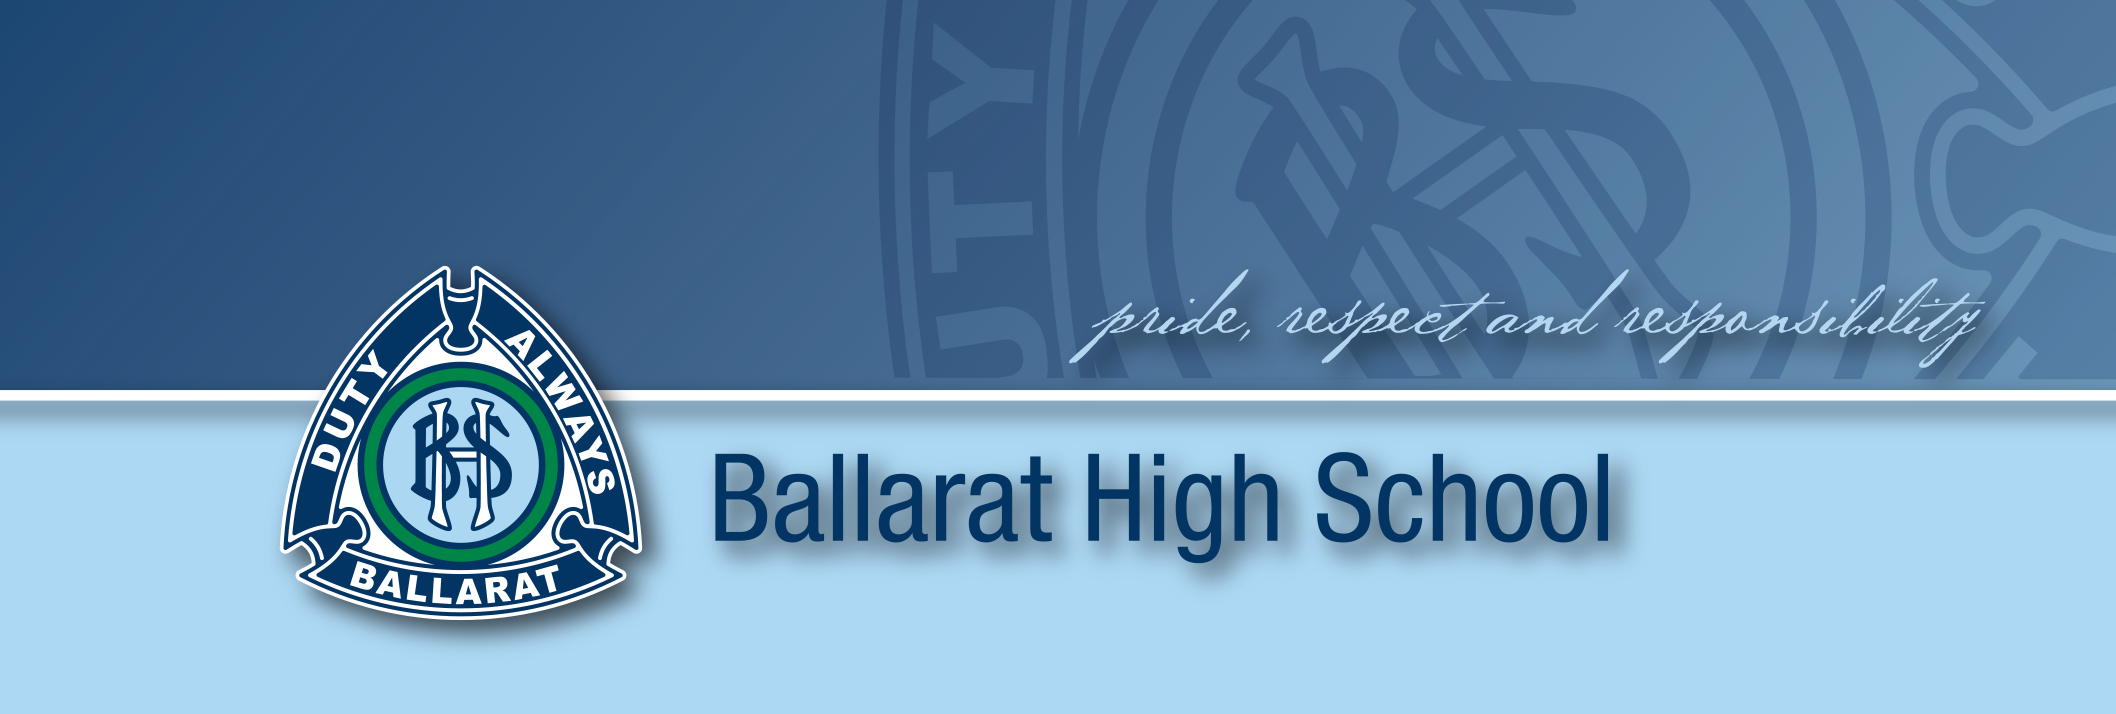 Uniform – Ballarat High School